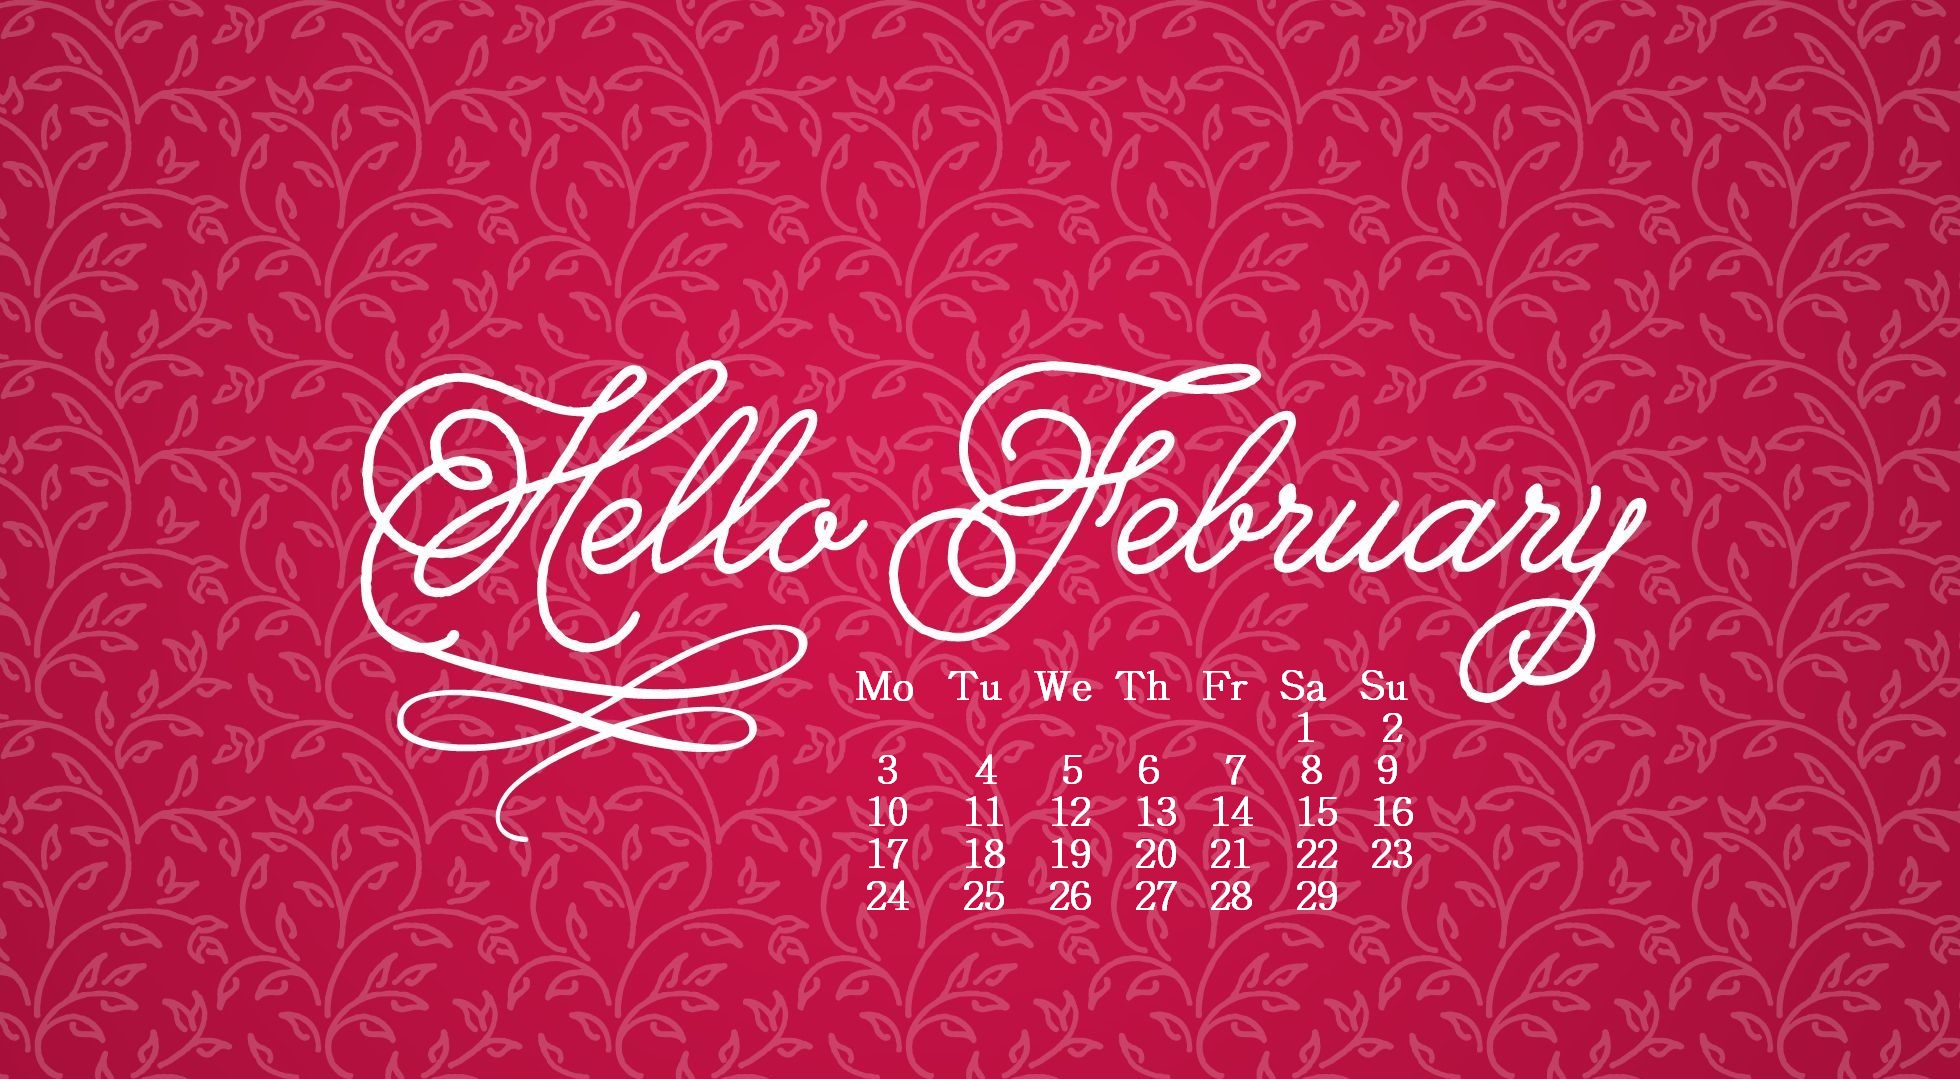 February 2020 Desktop Wallpaper Max Calendars 1960x1079